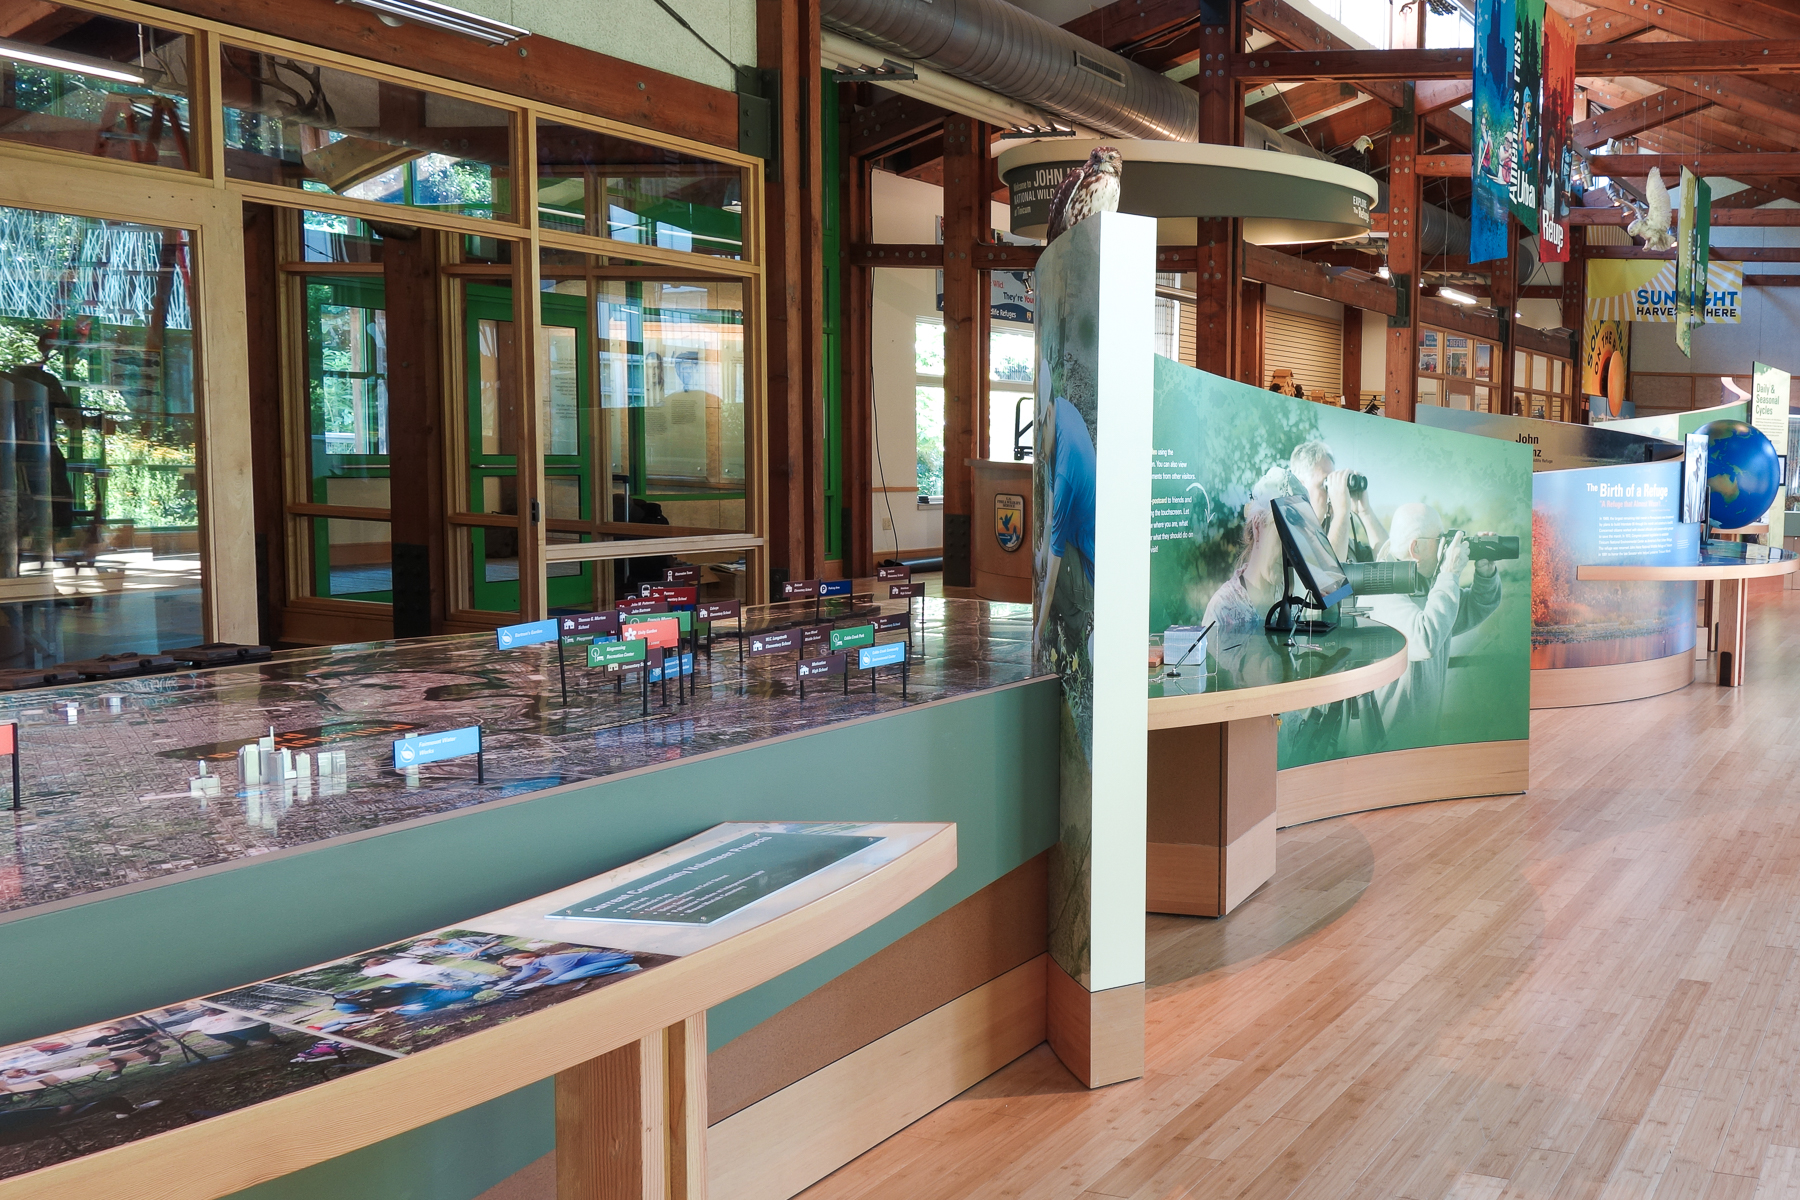 Curved walls form freestanding, double-sided graphic murals and guide visitors through the exhibits.